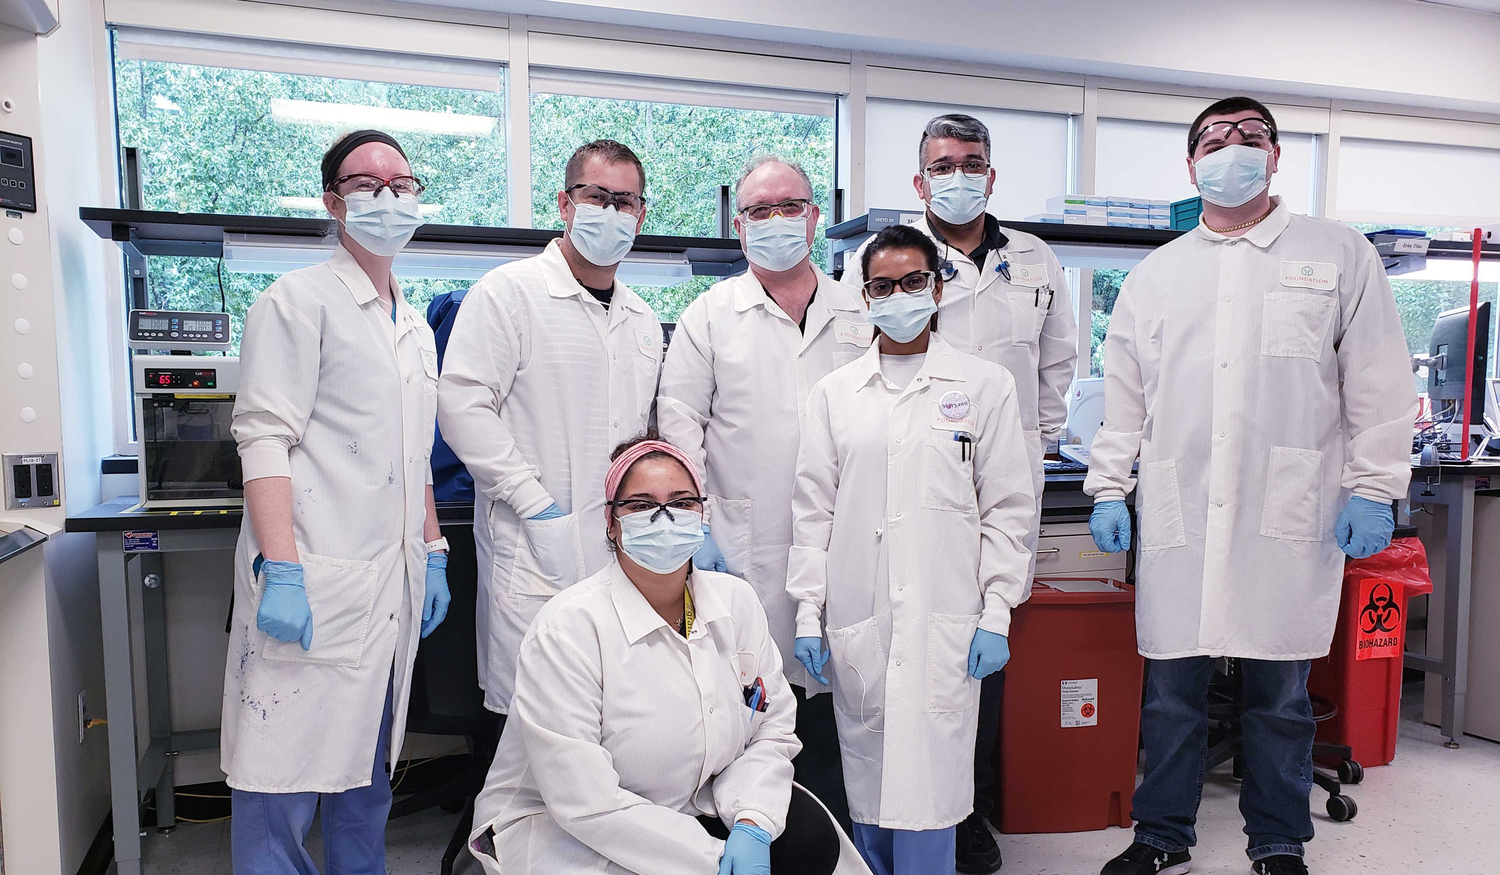 Person, Clinic, Clothing, Lab Coat, Coat, Hospital, Operating Theatre, Sunglasses, Lab, People